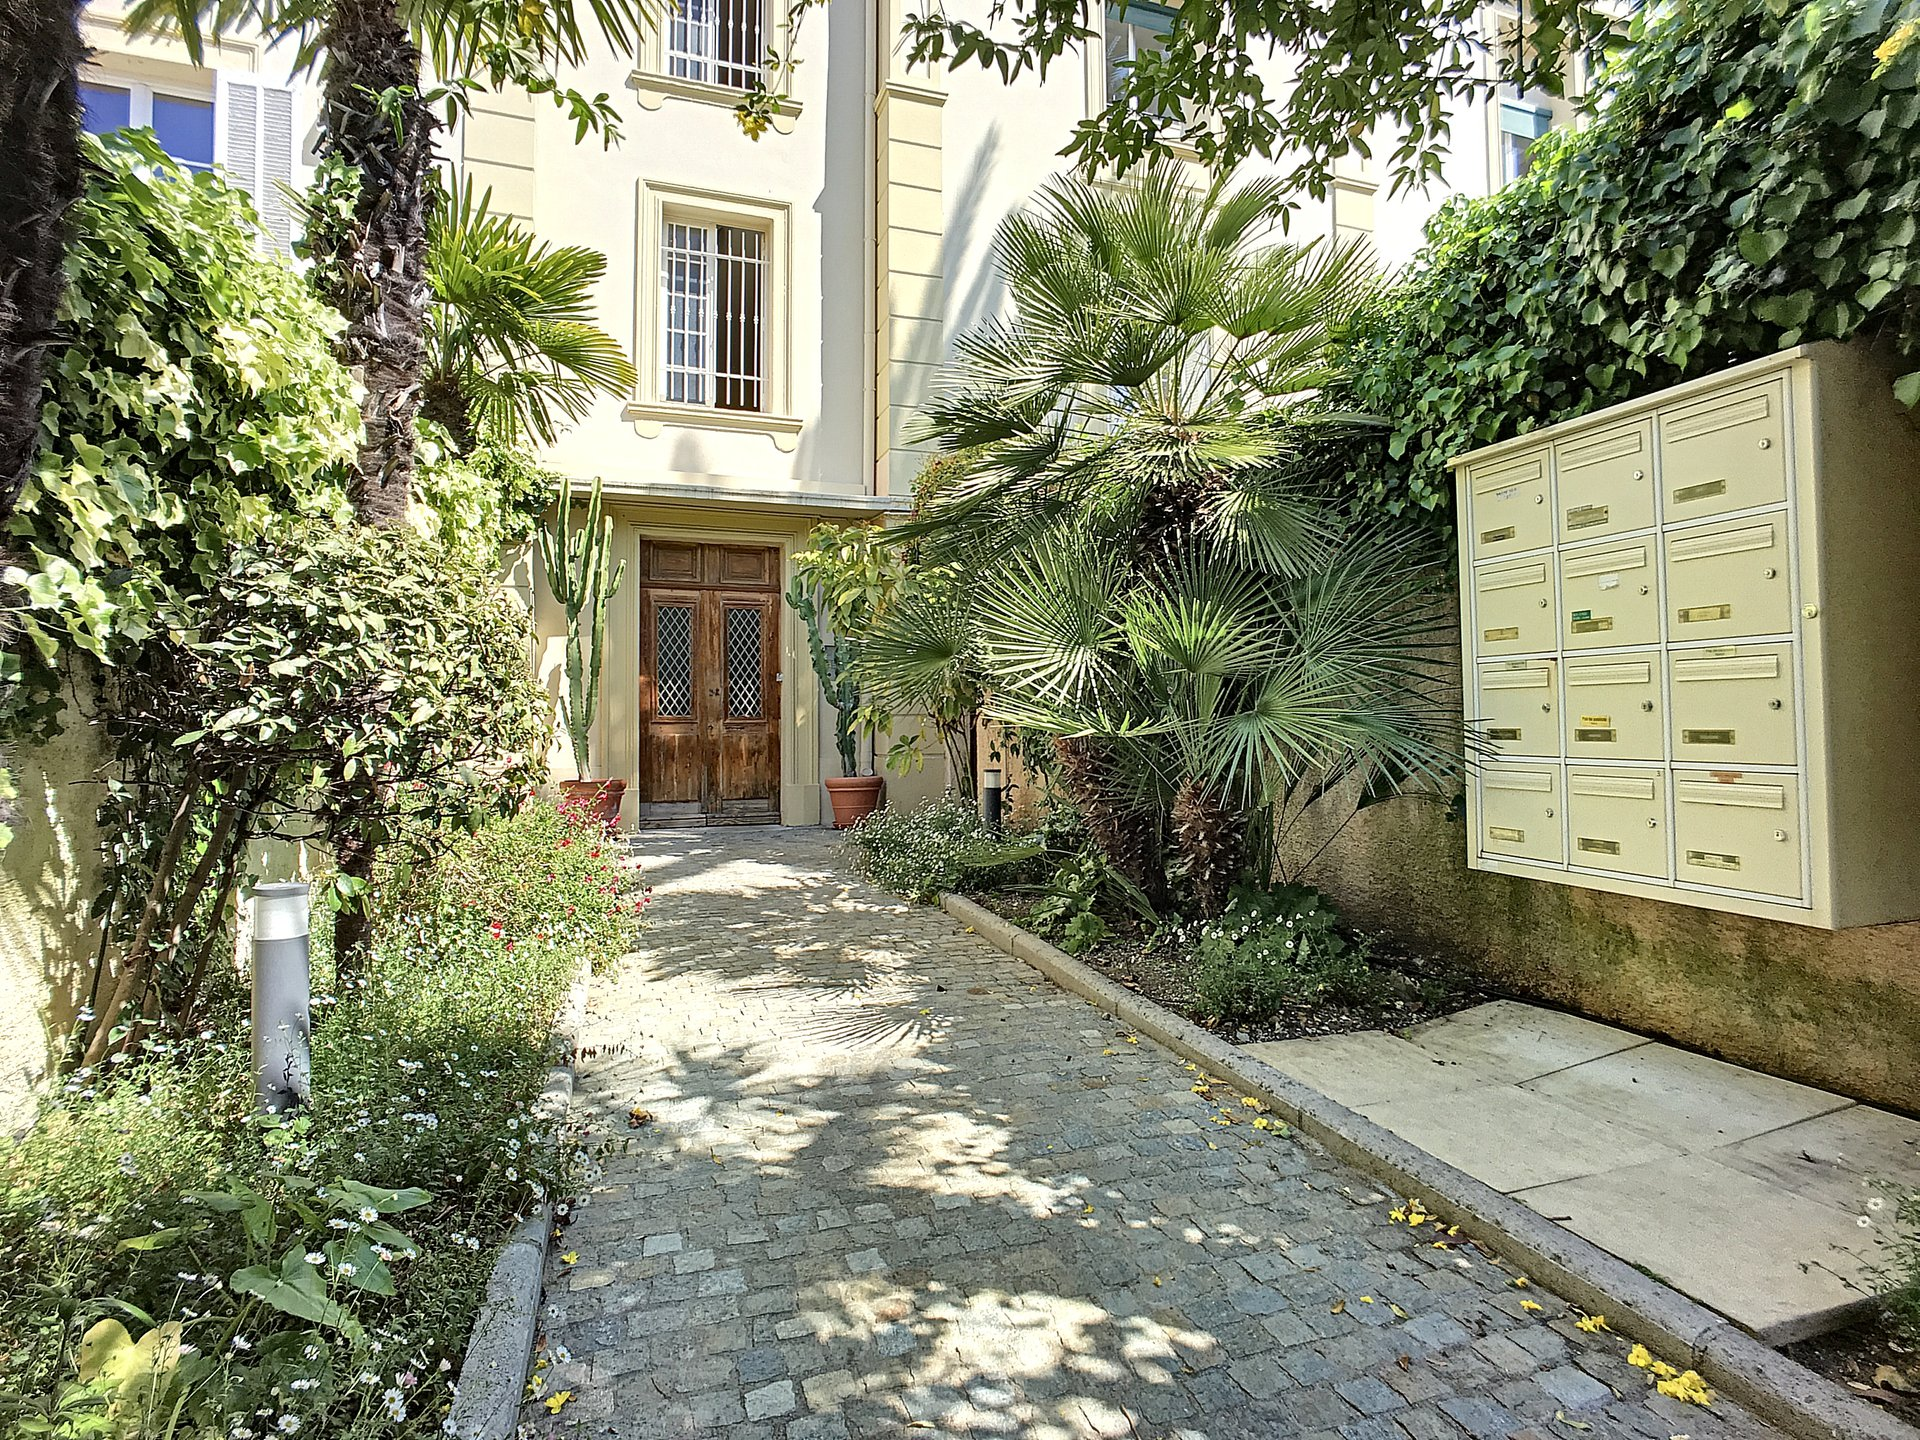 CANNES PRINCE DE GALLE 4 ROOMS QUIET IN BOURGEOIS HOUSE.